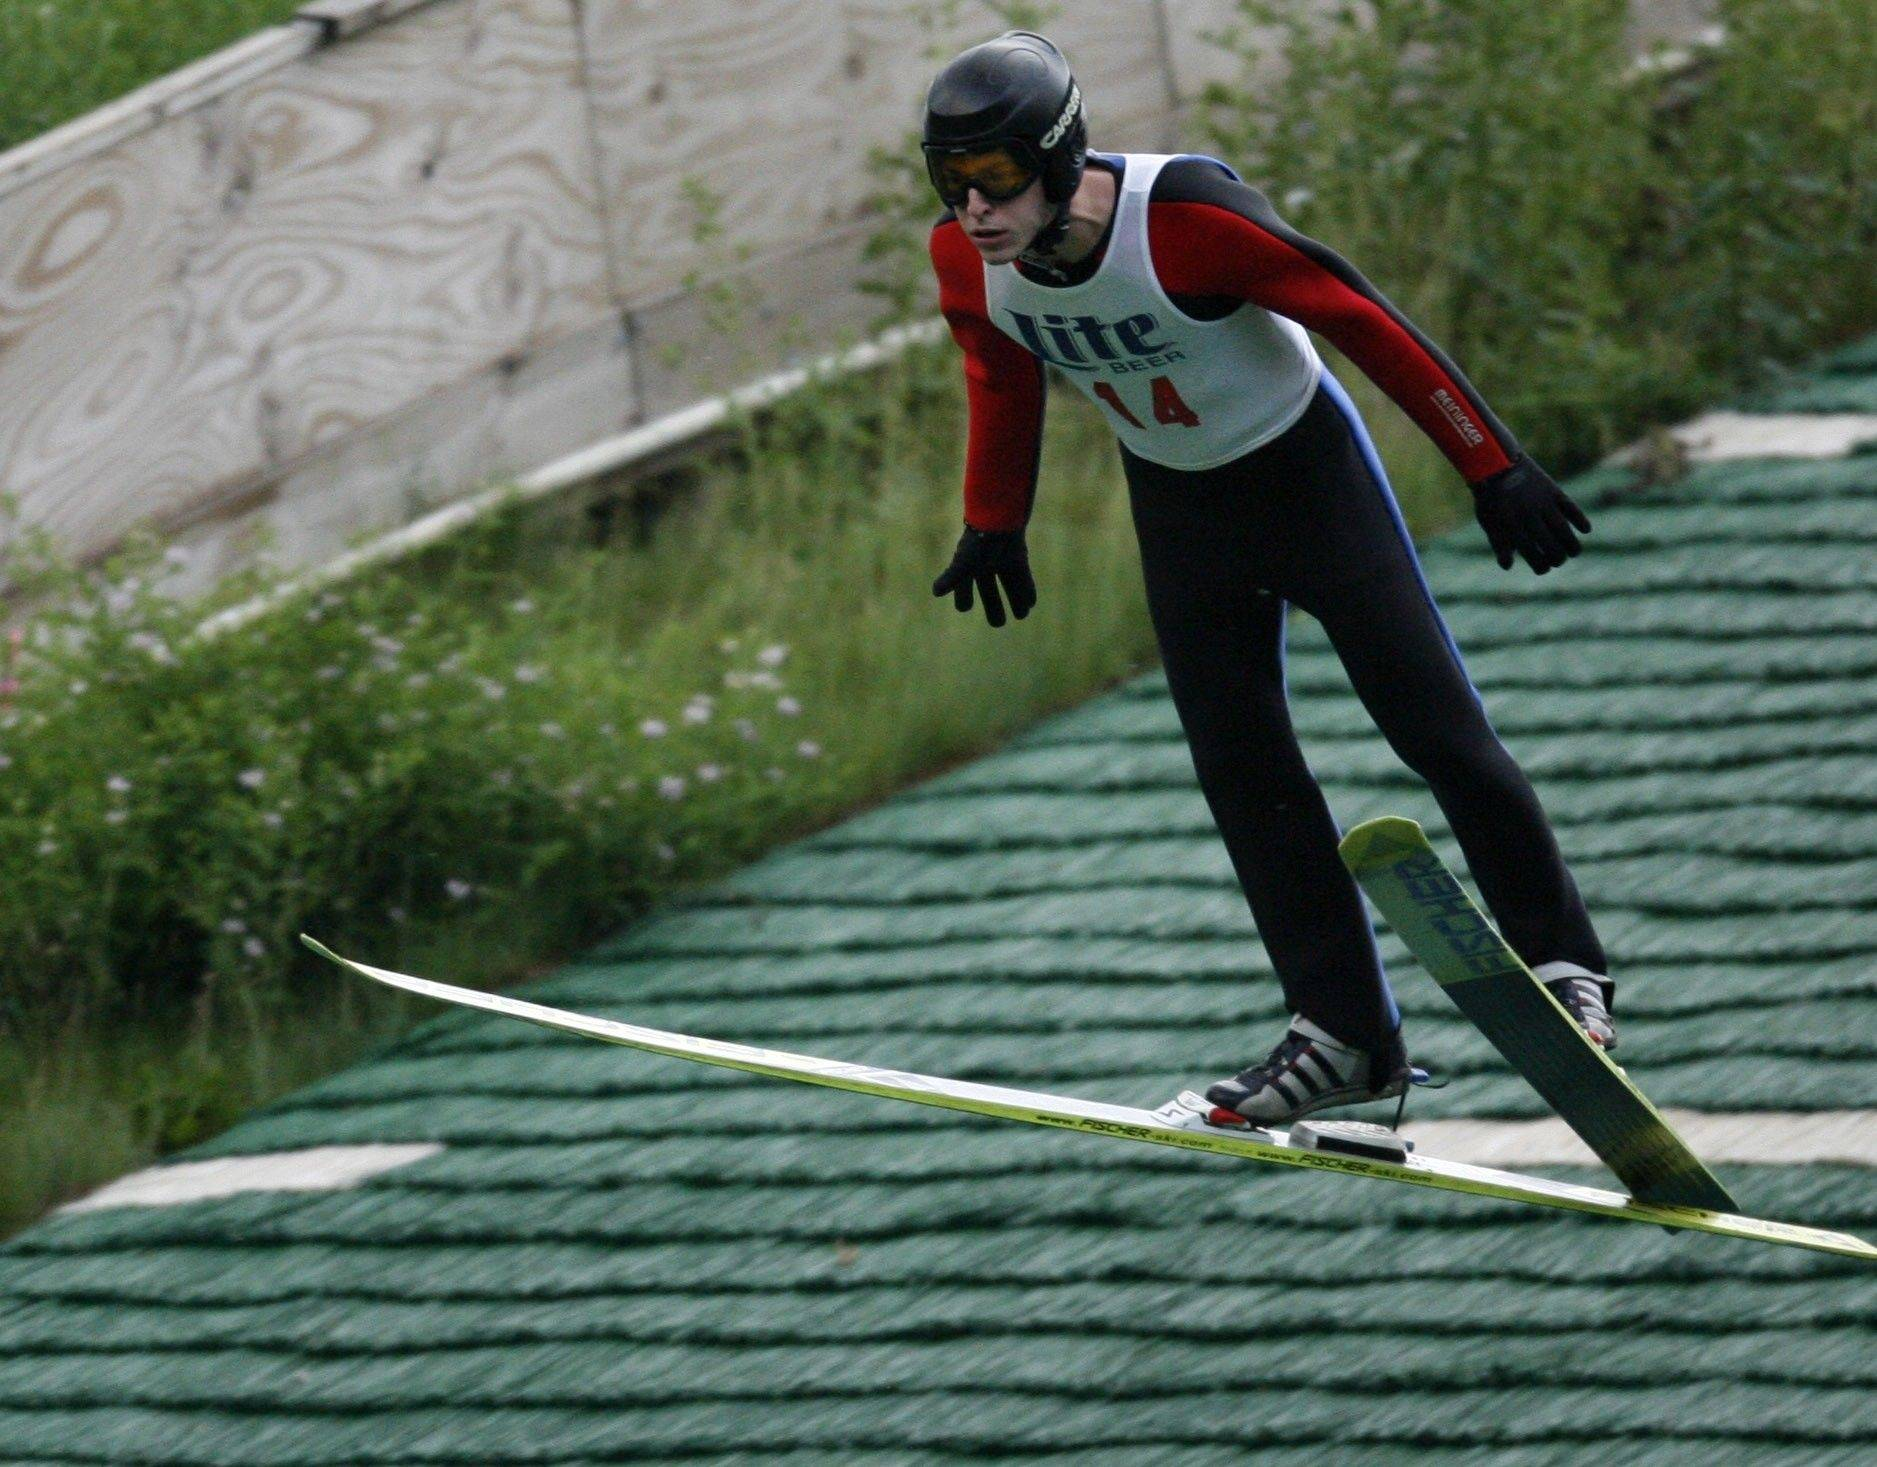 Mike Furey, of Lake Barrington, jumps at the 2008 Norge Ski Club's King of the Hill contest held in Fox River Grove. The club holds jumps in the summer and winter and is the oldest active jump club in the U.S. Jumpers land on an artificial surface that is continually sprayed with water.